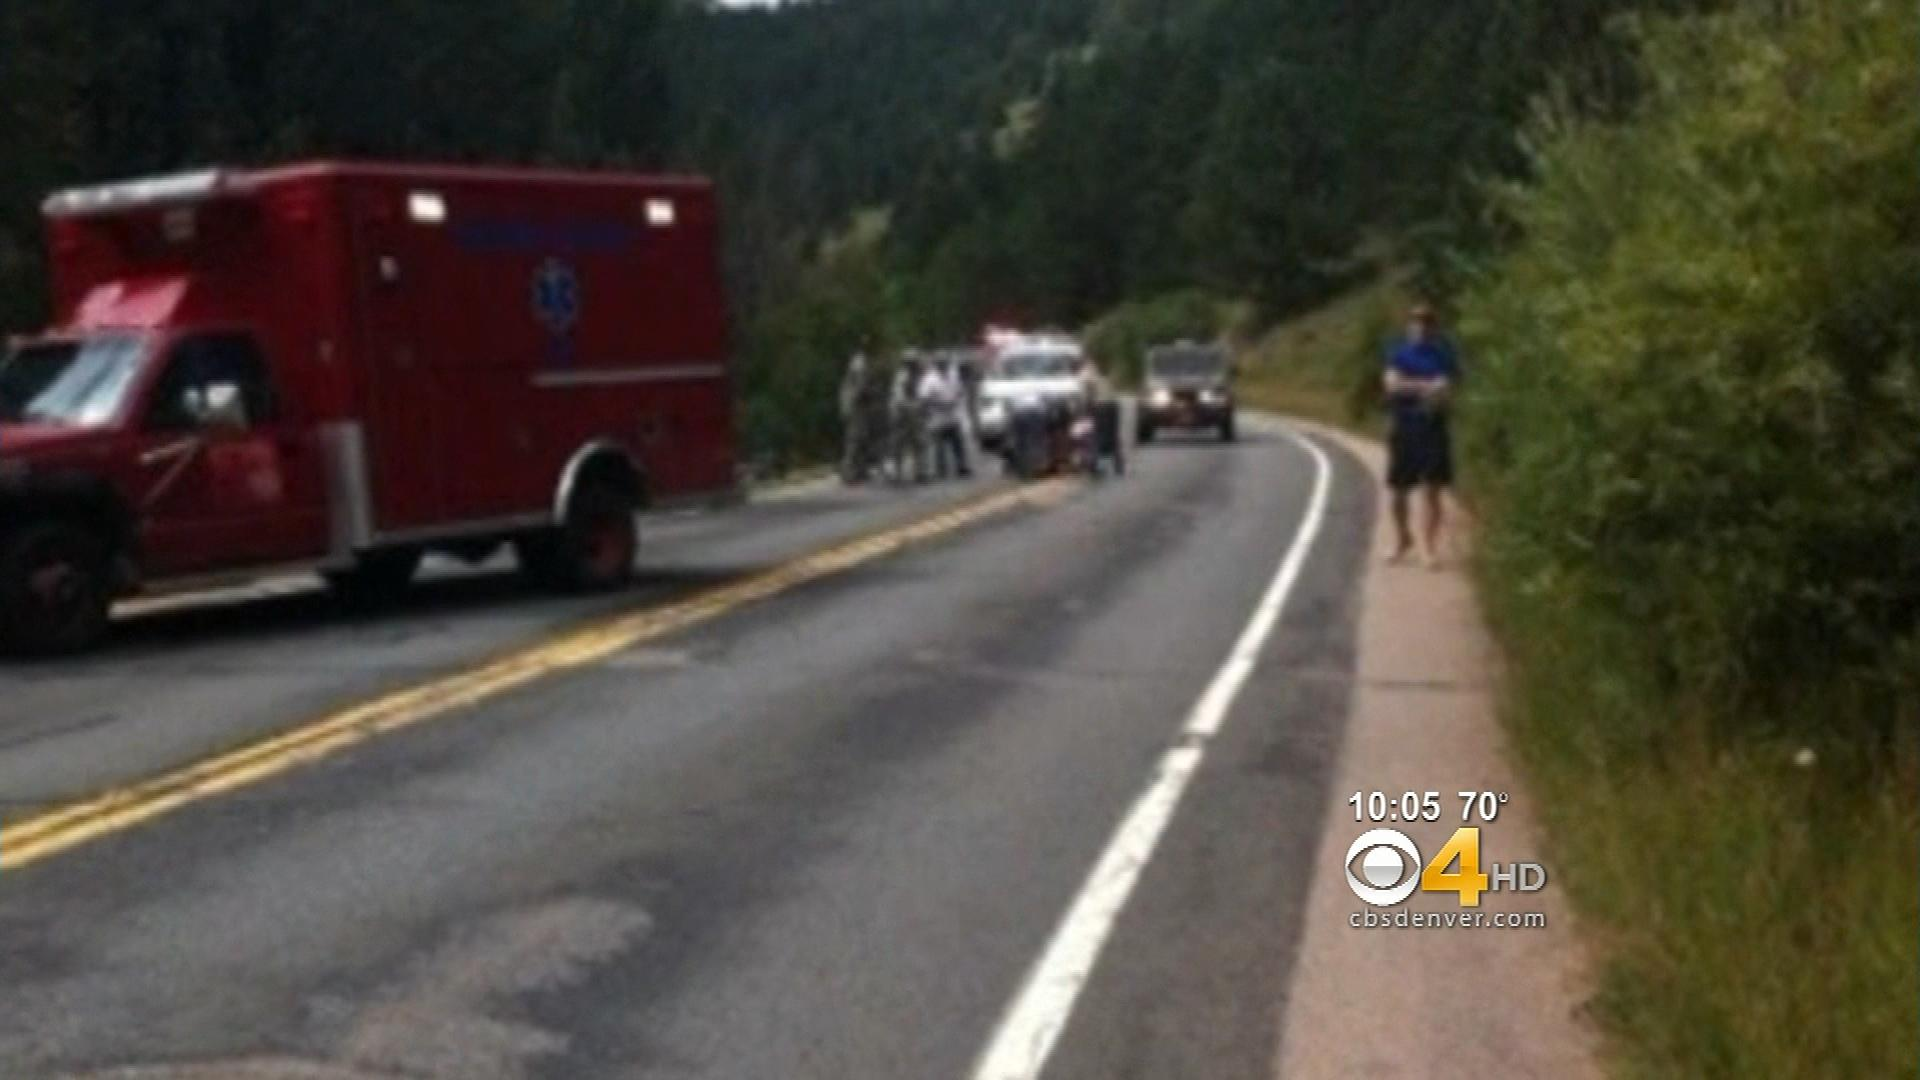 An image from the scene (credit: Colorado State Patrol)